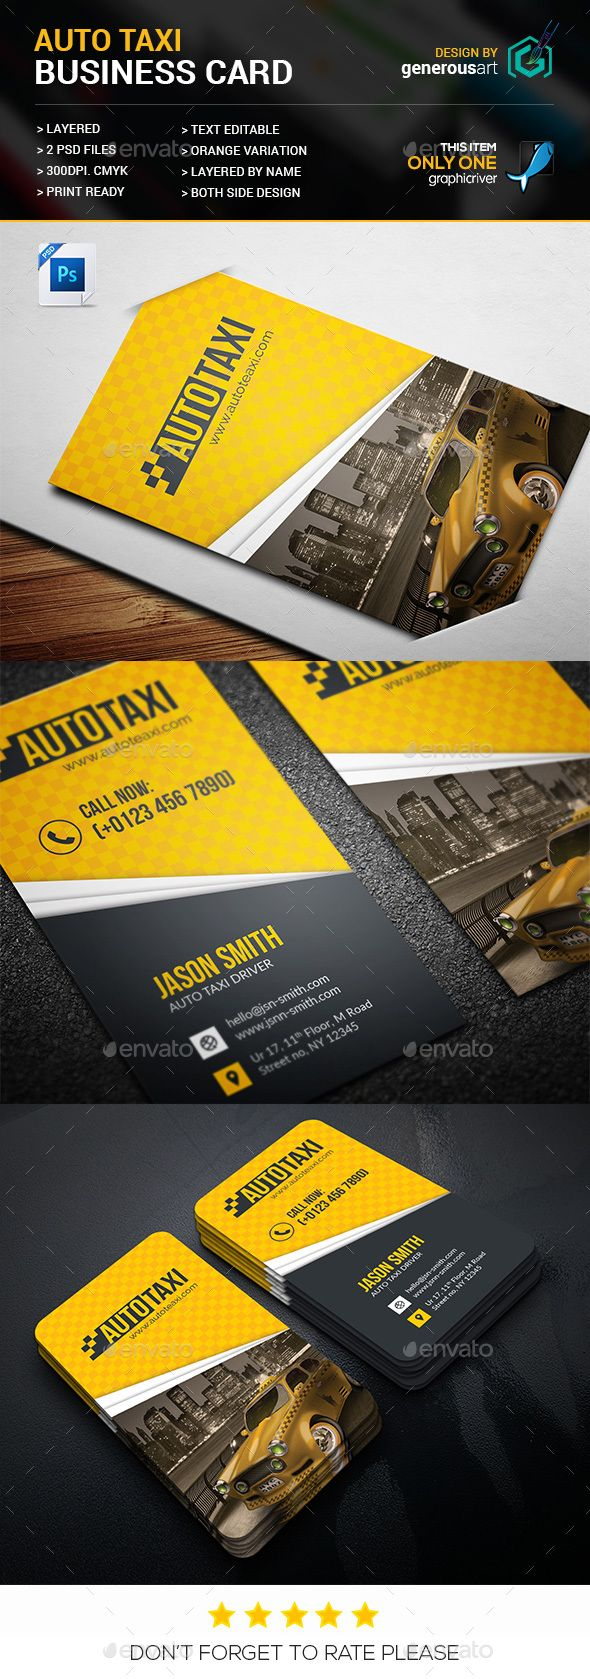 Auto Taxi Business Card | Print templates, Card printing and ...